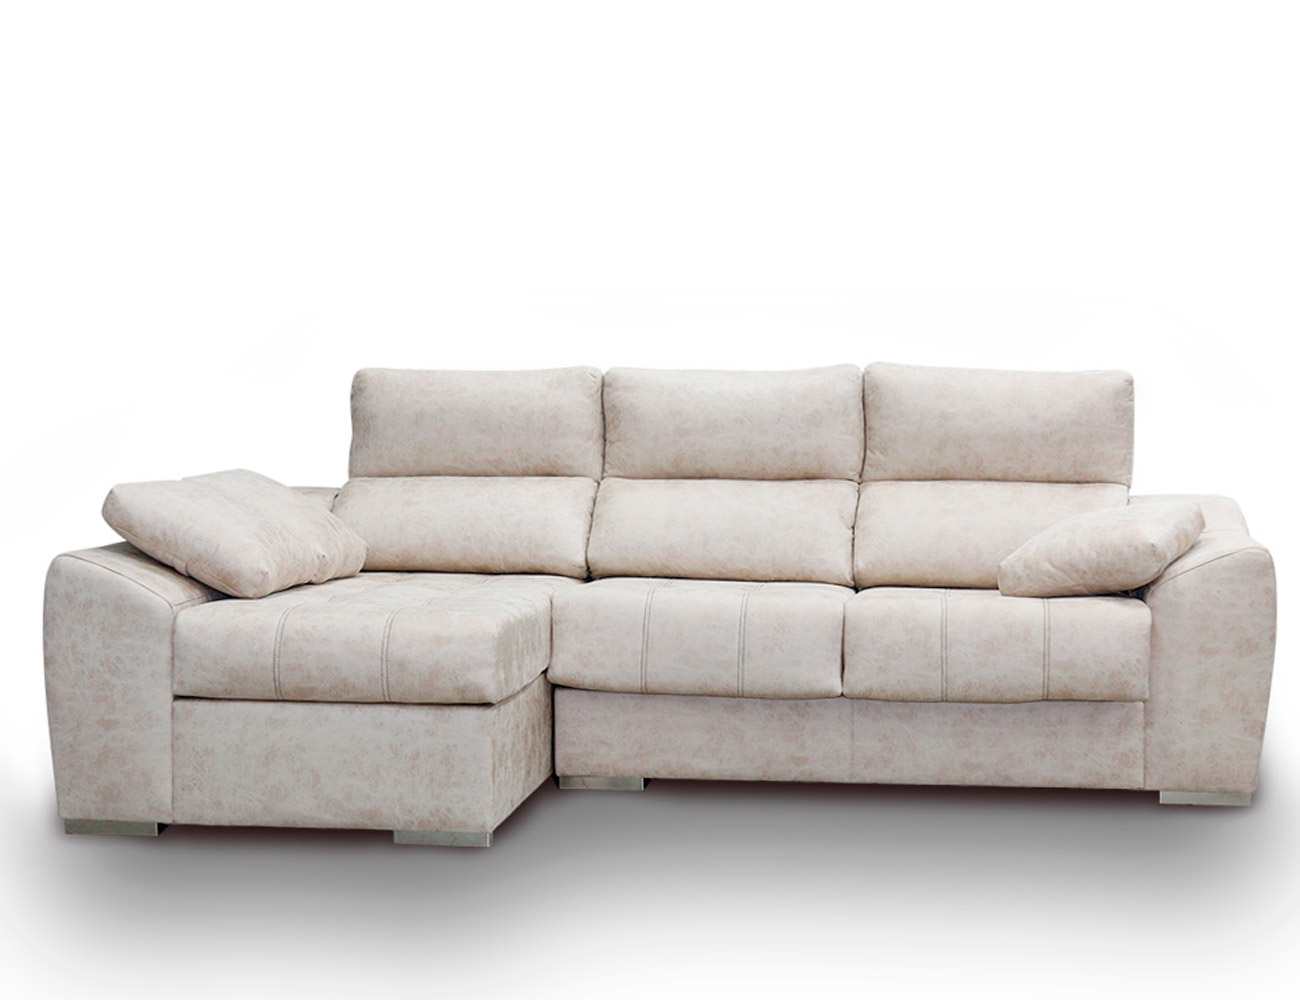 Sofa chaiselongue anti manchas beig blanco21